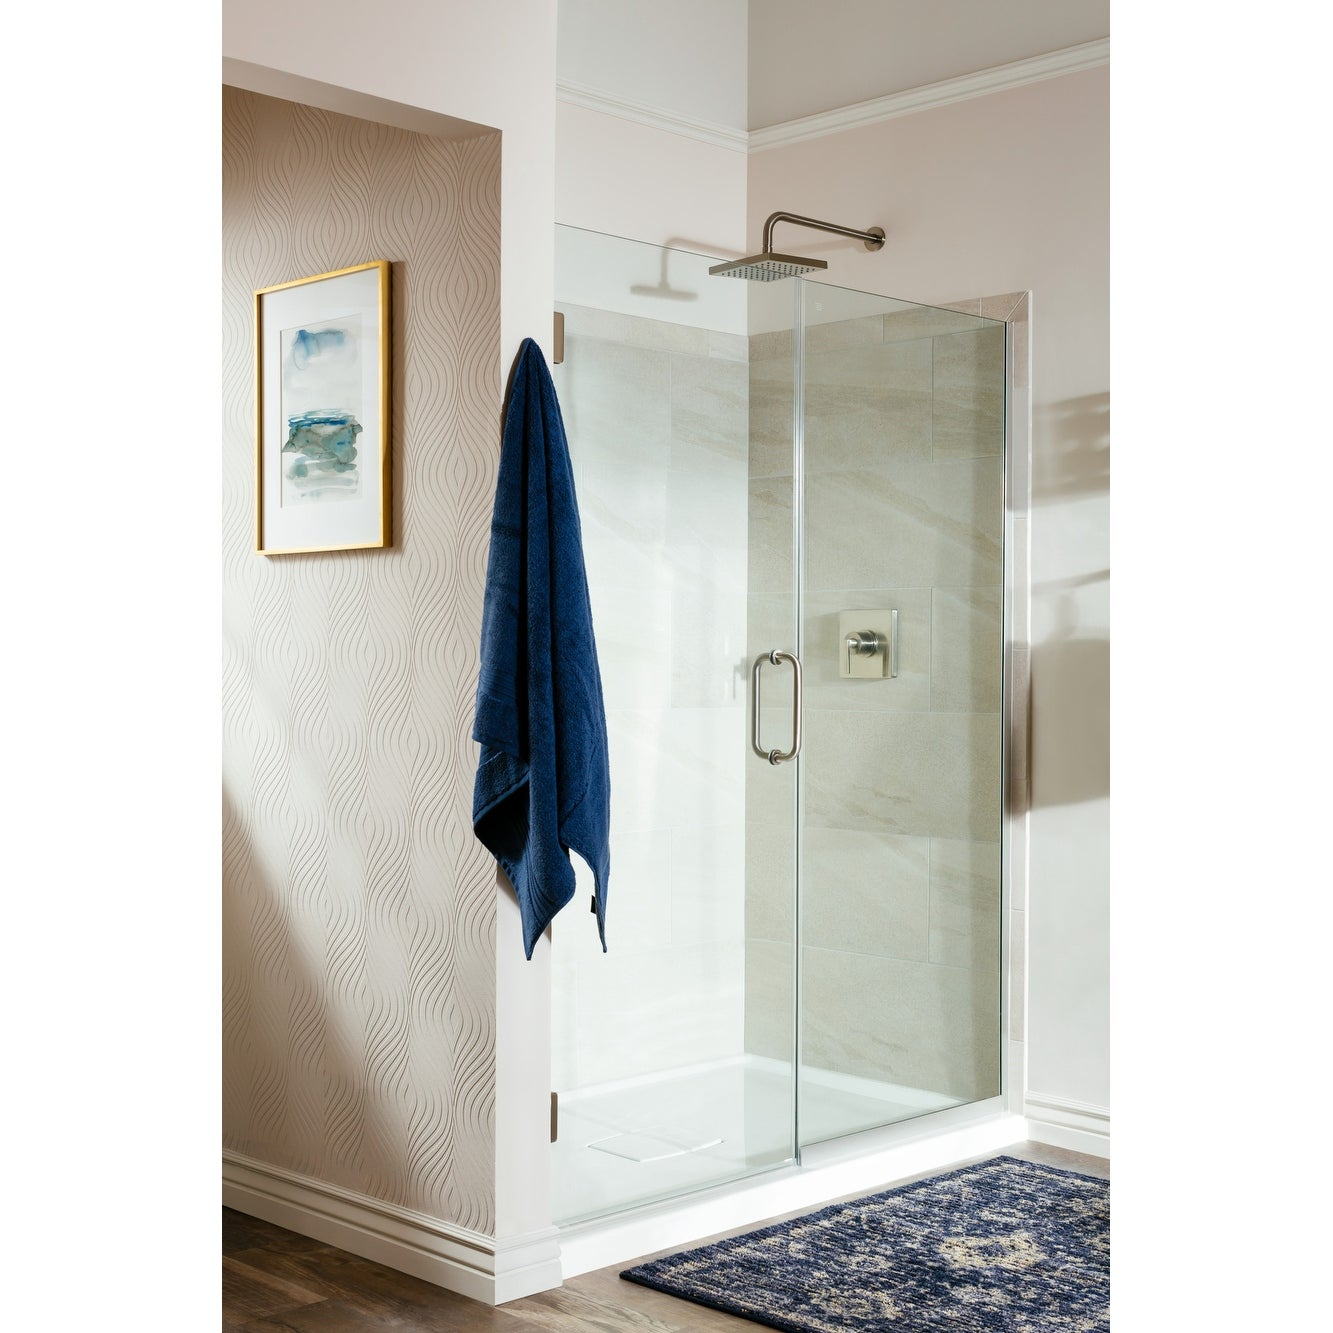 Miseno Msdf5972 Swing 72in High X 59in Wide Hinged Frameless Shower Door With Clear Glass N A